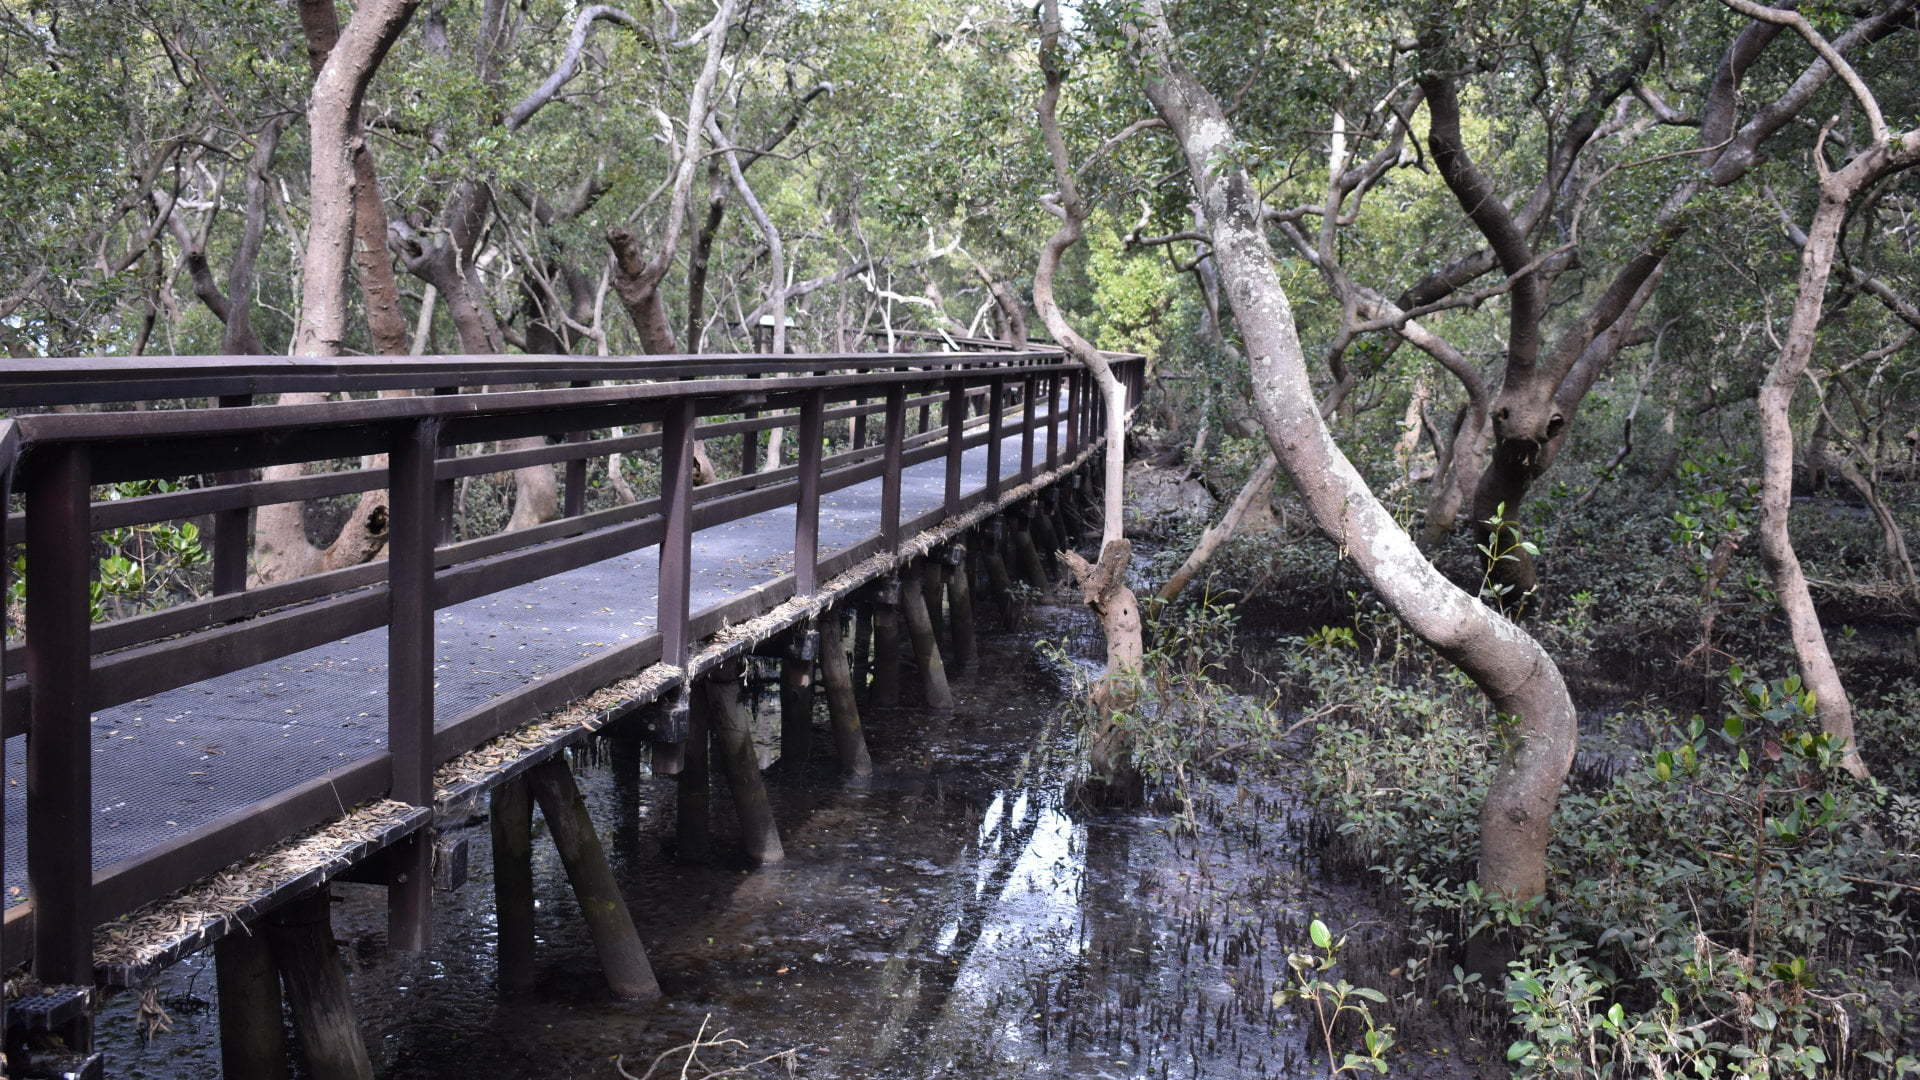 Mangrove Boardwalk through the mangroves, located on the foreshore of Moreton Bay at Wynnum, from Elanora Park and continues to a bird hide overlooking tidal saltmarshes